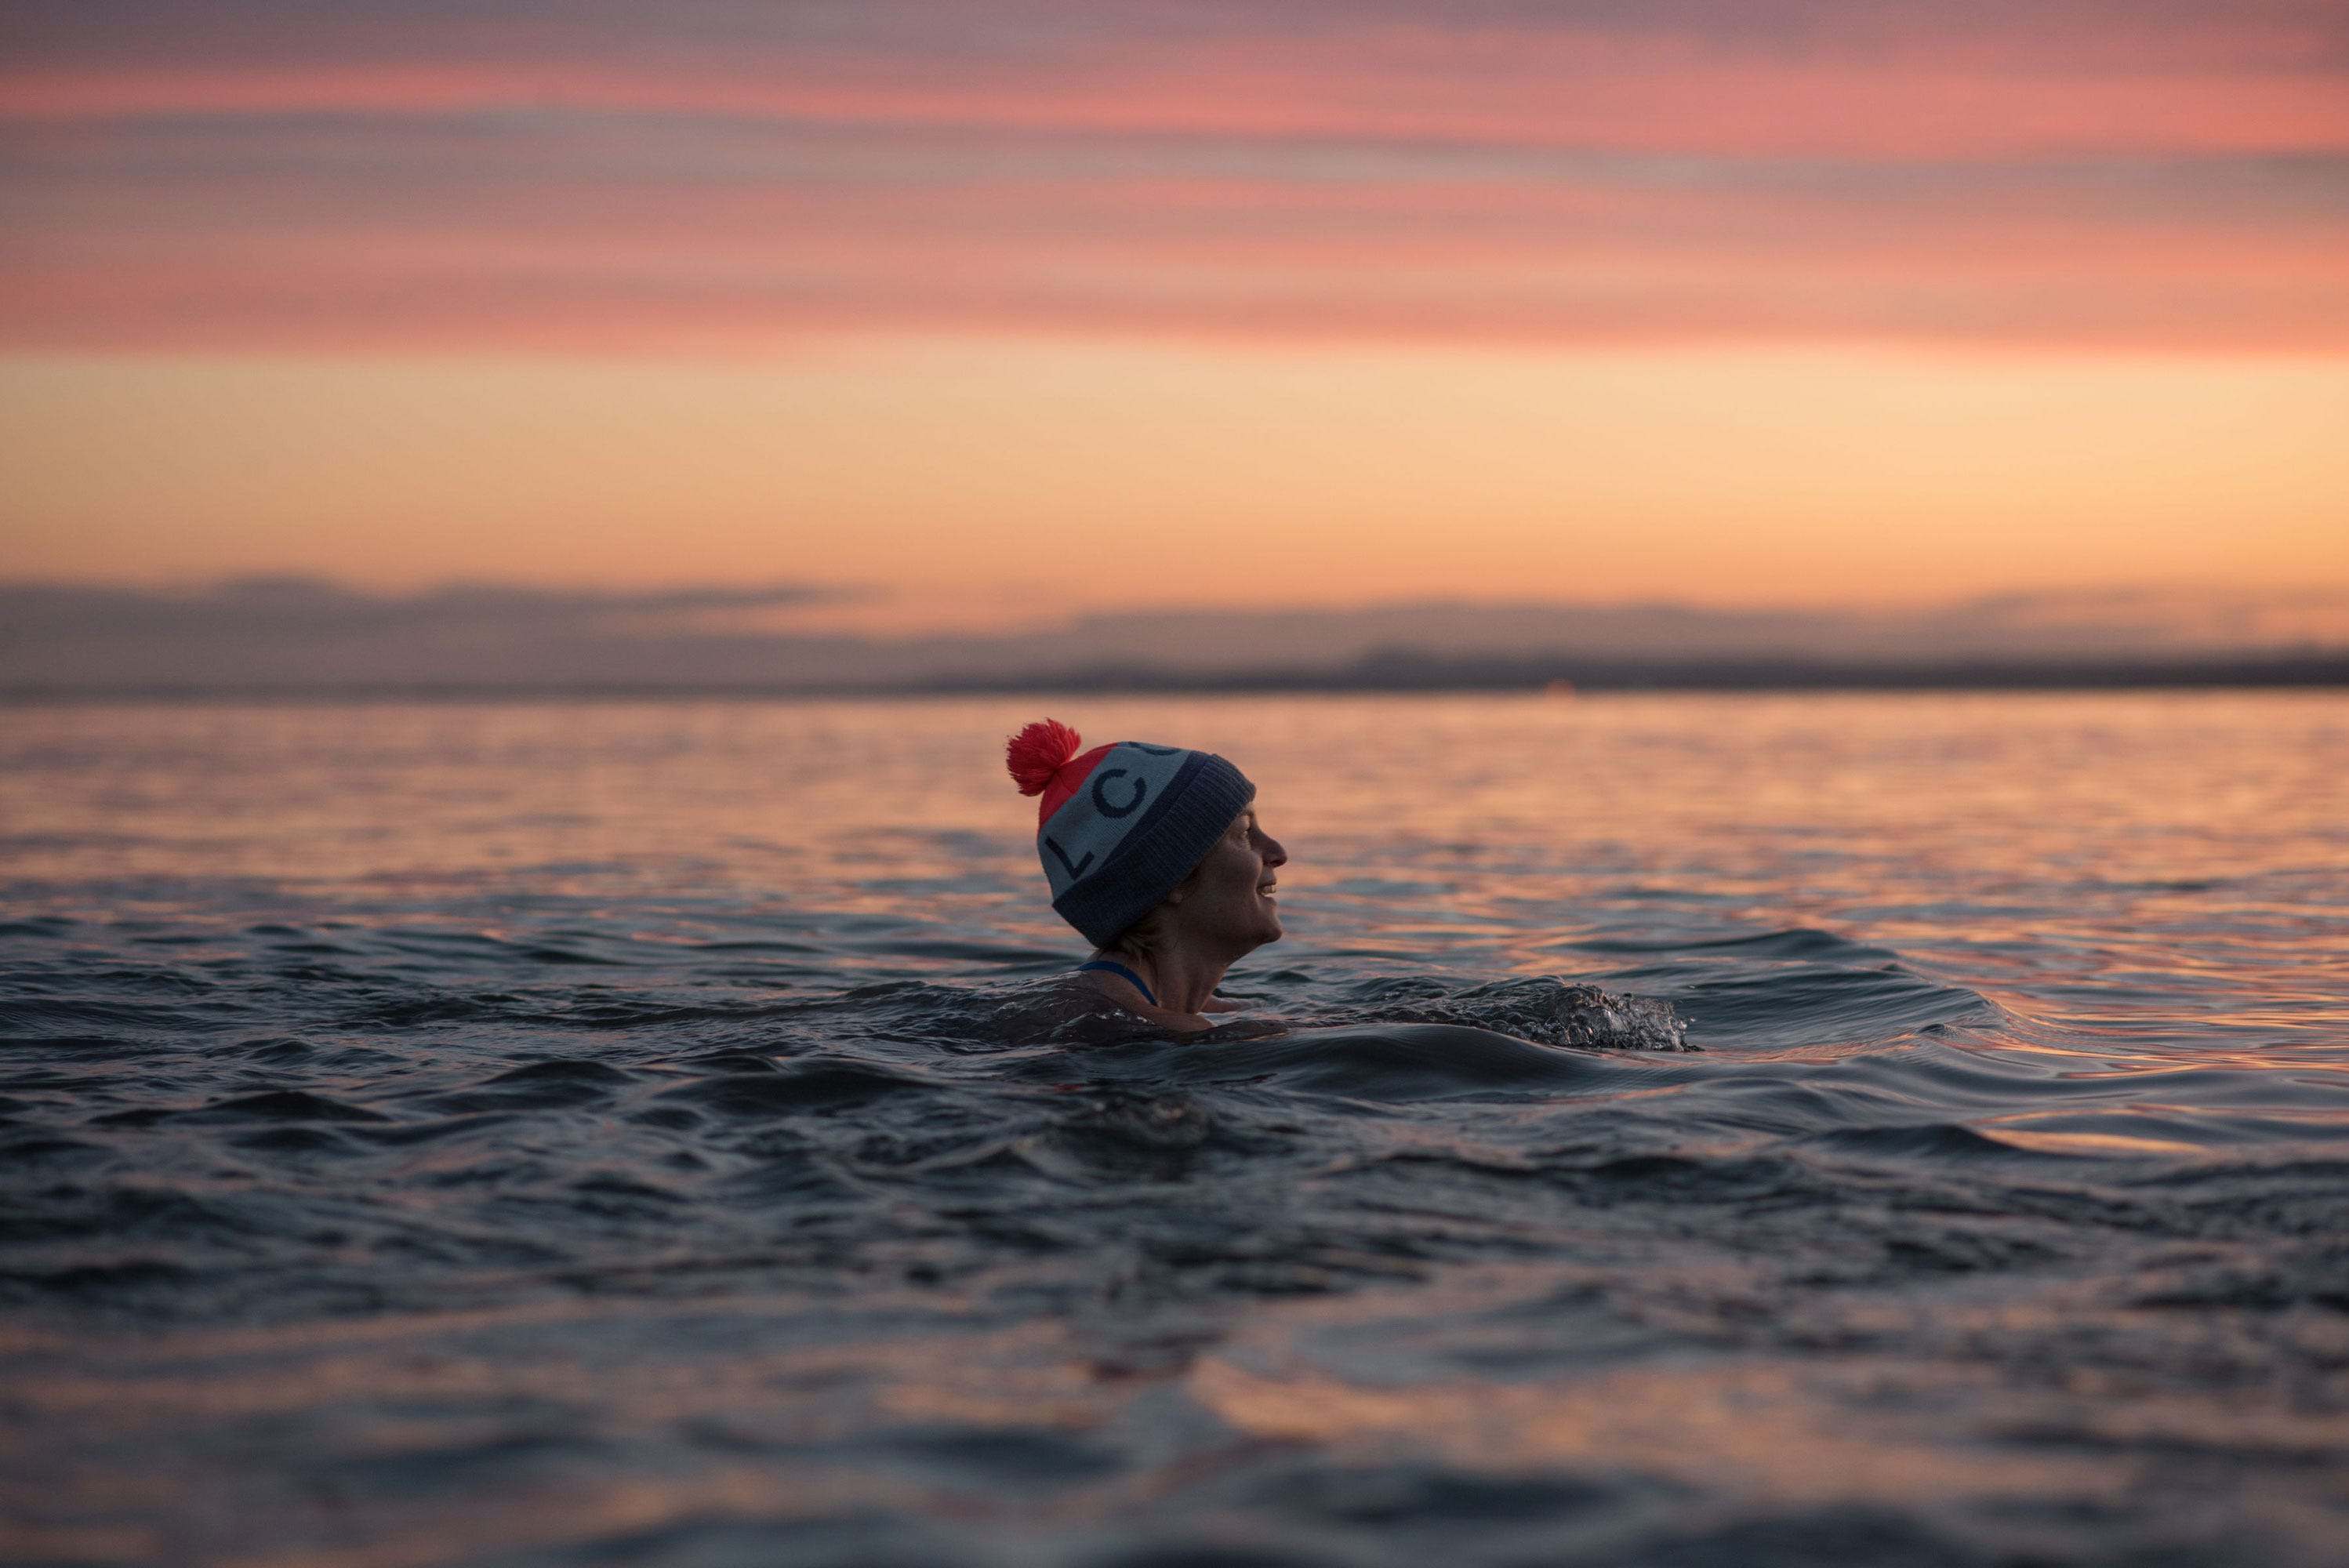 Wild Swimming Is The Anxiety Antidote I Never Knew I Needed